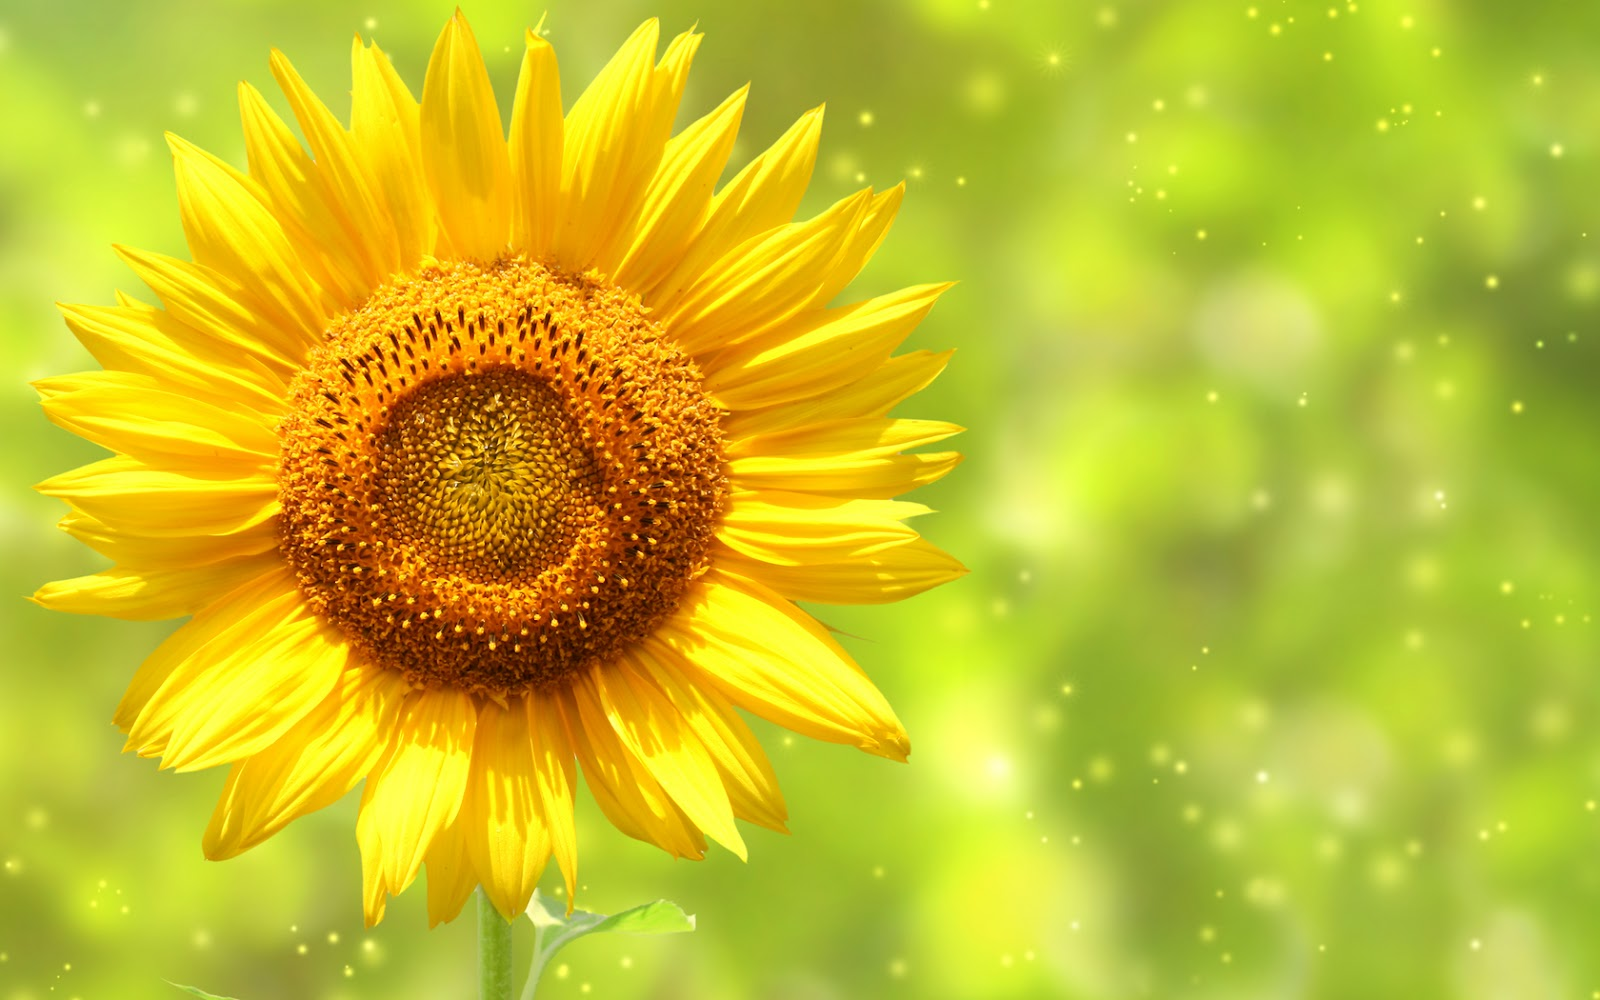 wallpapers: Sunflowers Wallpapers 1600x1000